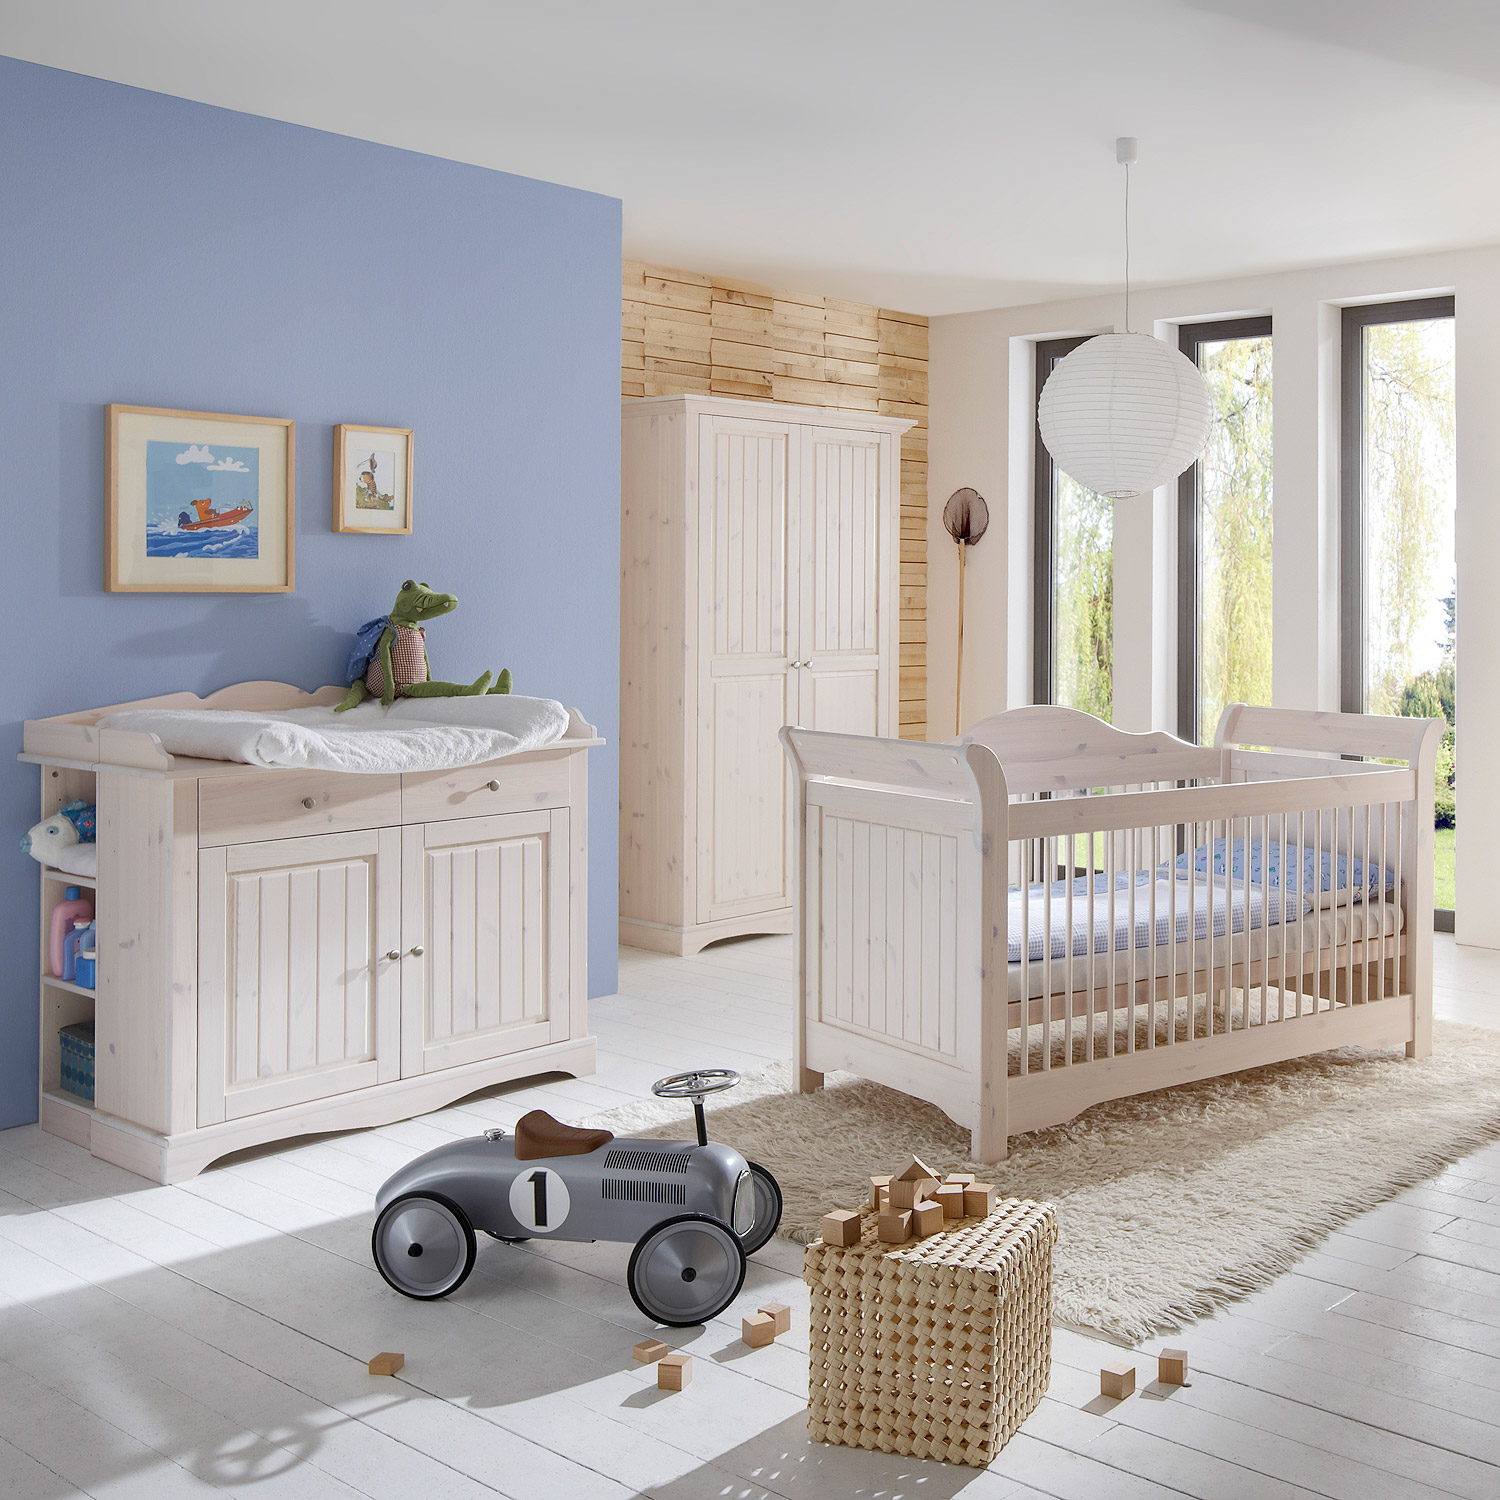 babyzimmer lotta babybett schrank wickelkommode kiefer massiv wei white wash ebay. Black Bedroom Furniture Sets. Home Design Ideas